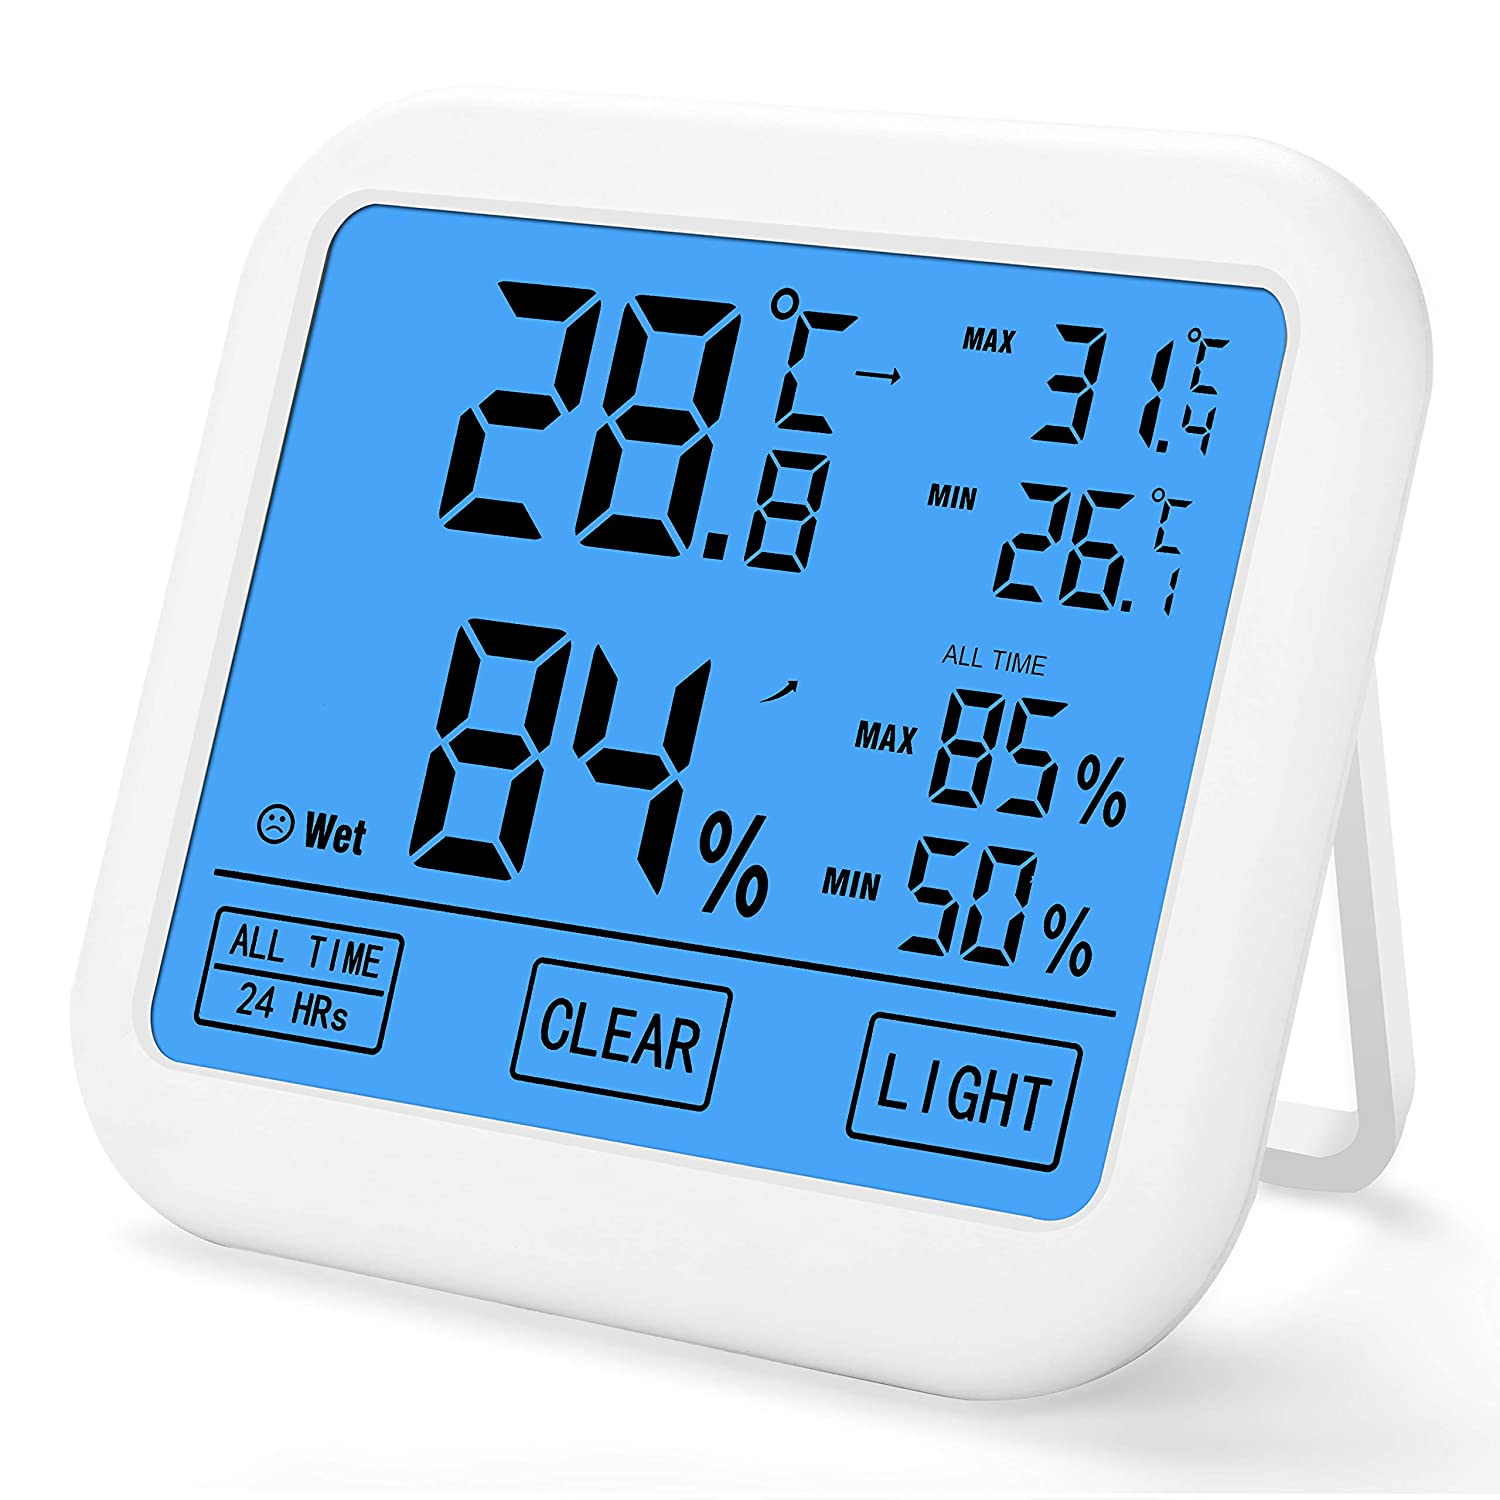 KEY NICE Digital Thermo-hygrometer Indoor Thermometer Hygrometer with Larger LCD Backlit Display, Min/Max Records Include Batteries, Monitor Temperature and Humidity for Home and Office